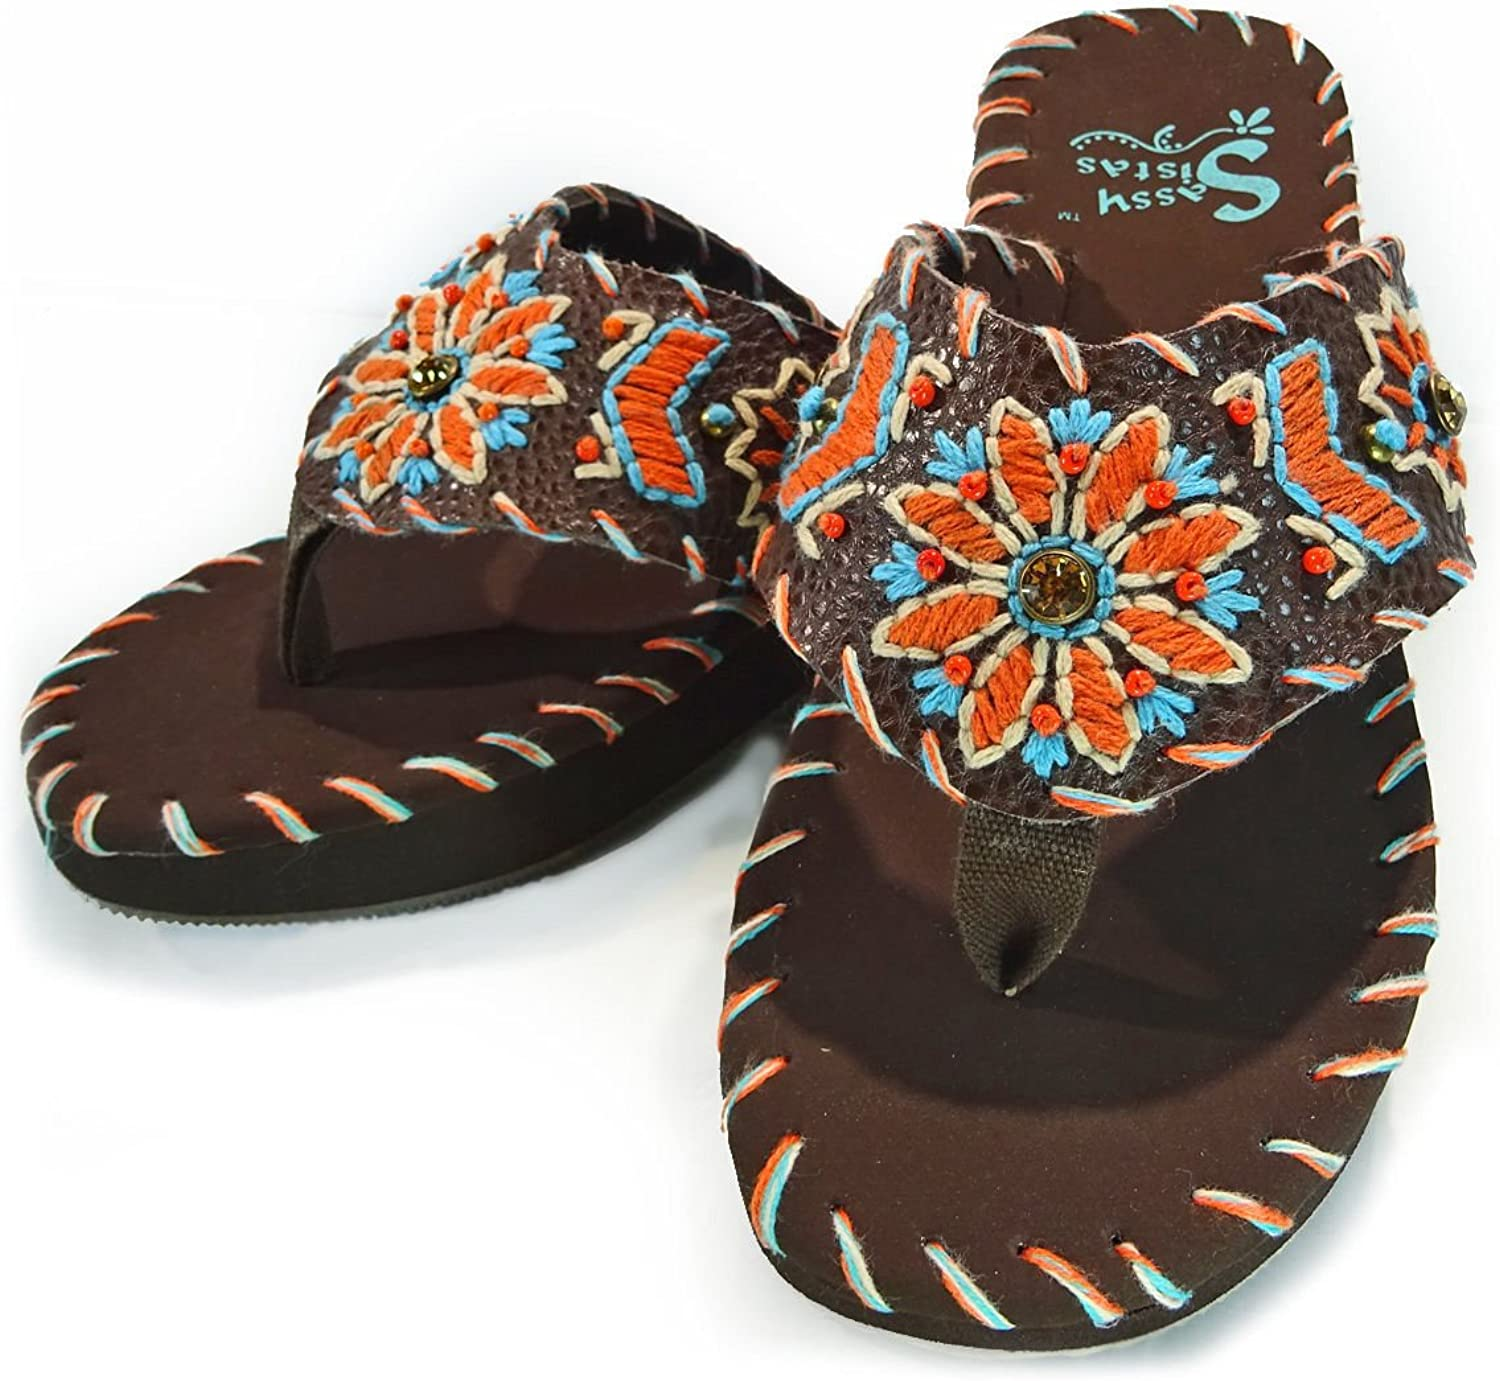 Montana West Sassy Sista- Leather Uppers, Embroidered Wedge Sandals- Coffee